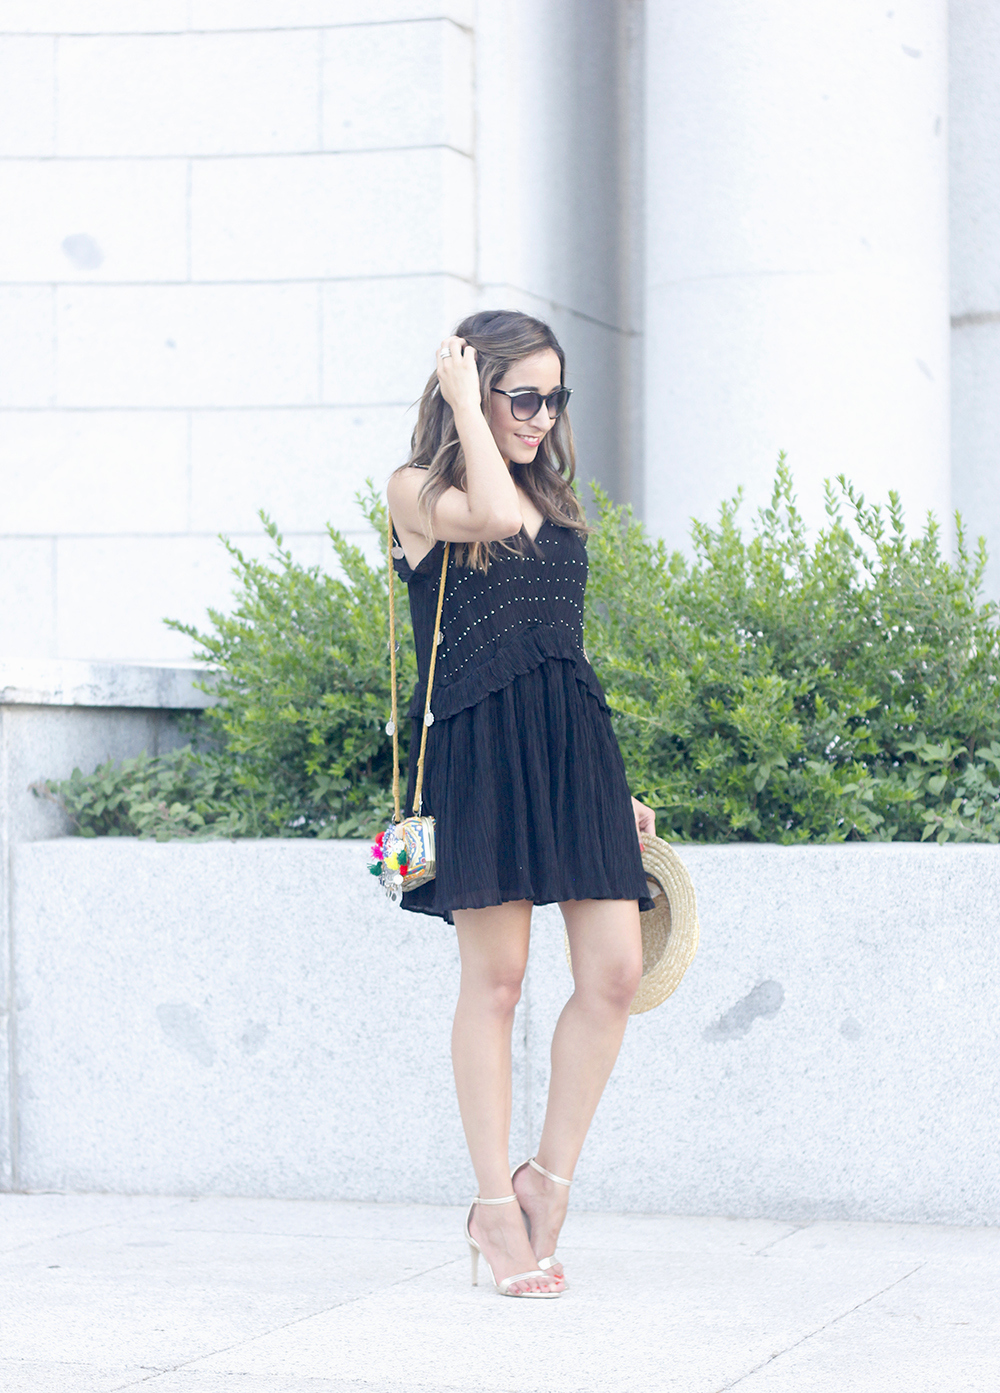 boho black canotier heels summer outfit bag with pom poms summer outfit12